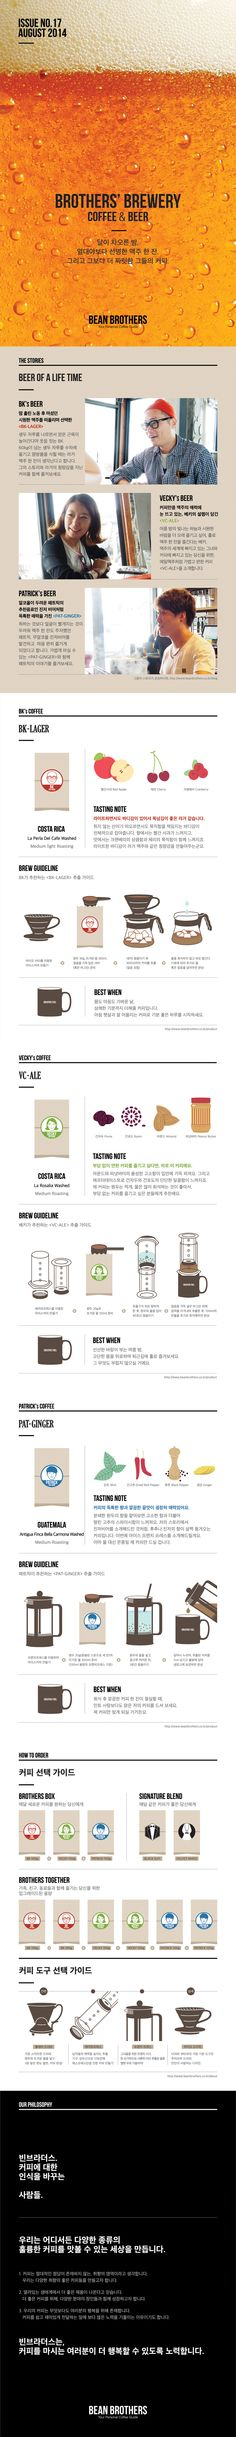 BEAN BROTHERS AUGUST BOX / 빈브라더스 8월의 커피박스 / BROTHERS' BREWERY - Coffee & Beer / Coffee Subscription / Editorial Design / www.beanbrothers.co.kr